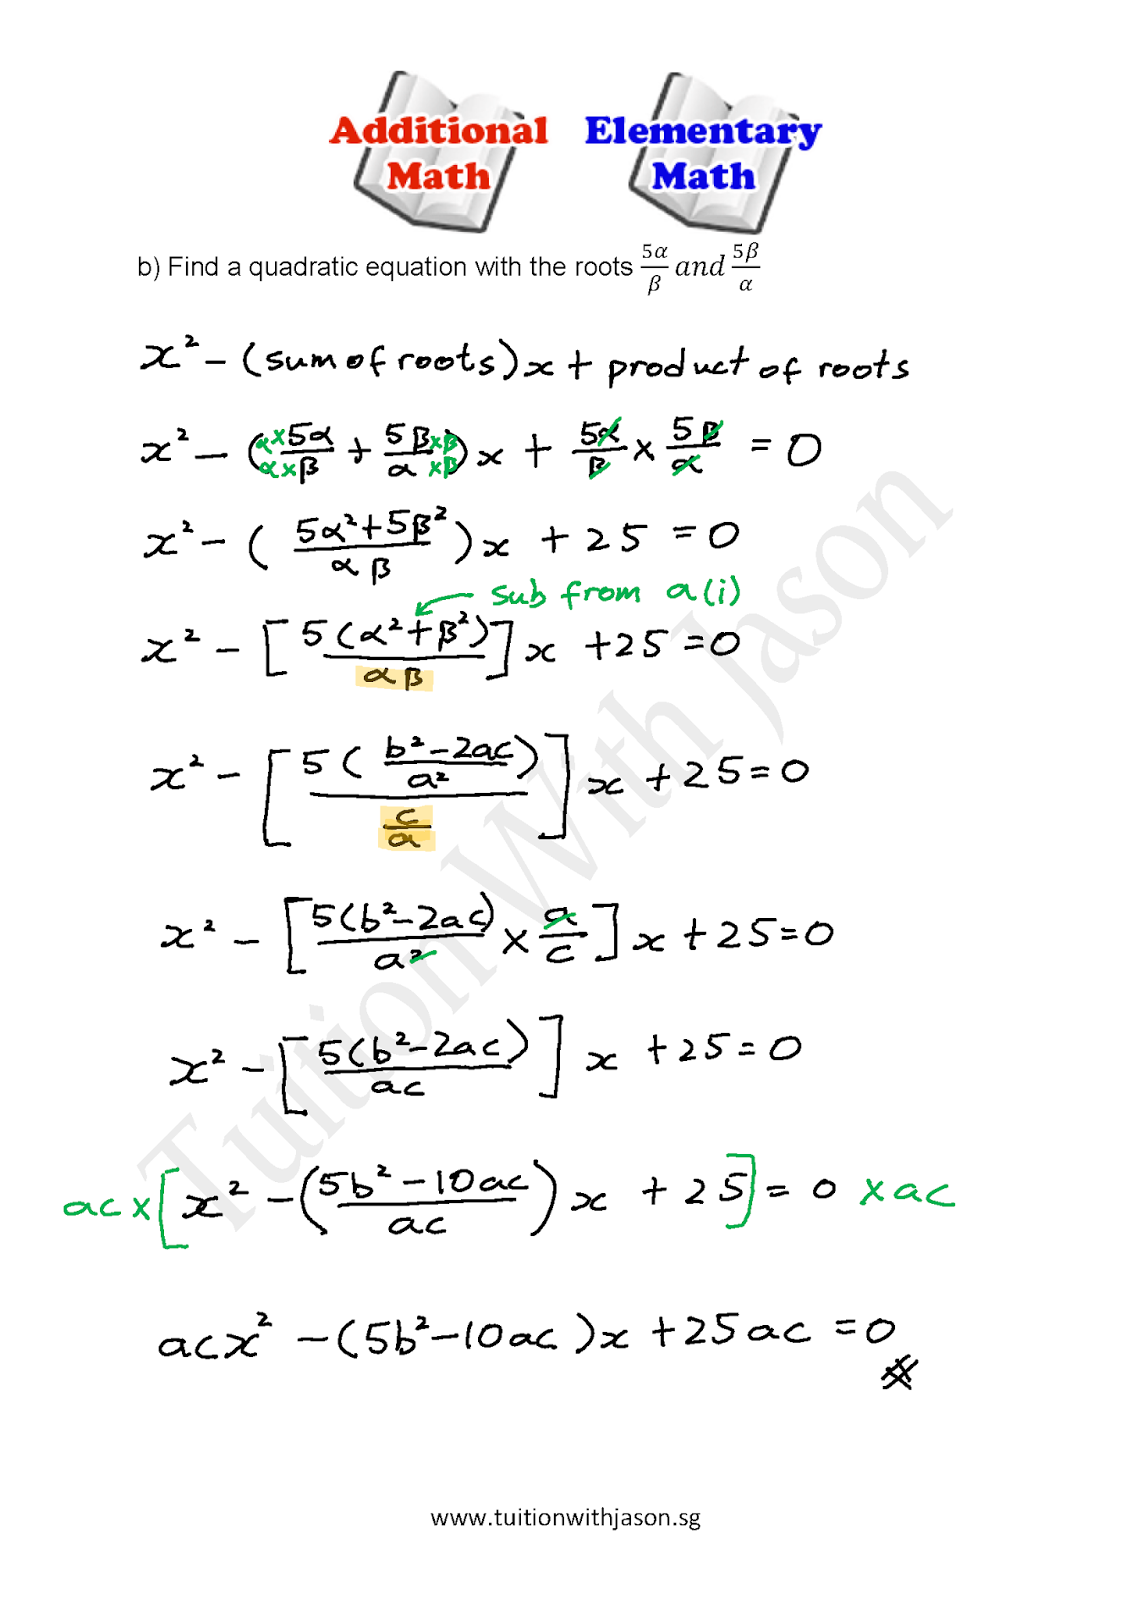 A-Math - Quadratic Equation - Sum and Product of Roots (2 ...